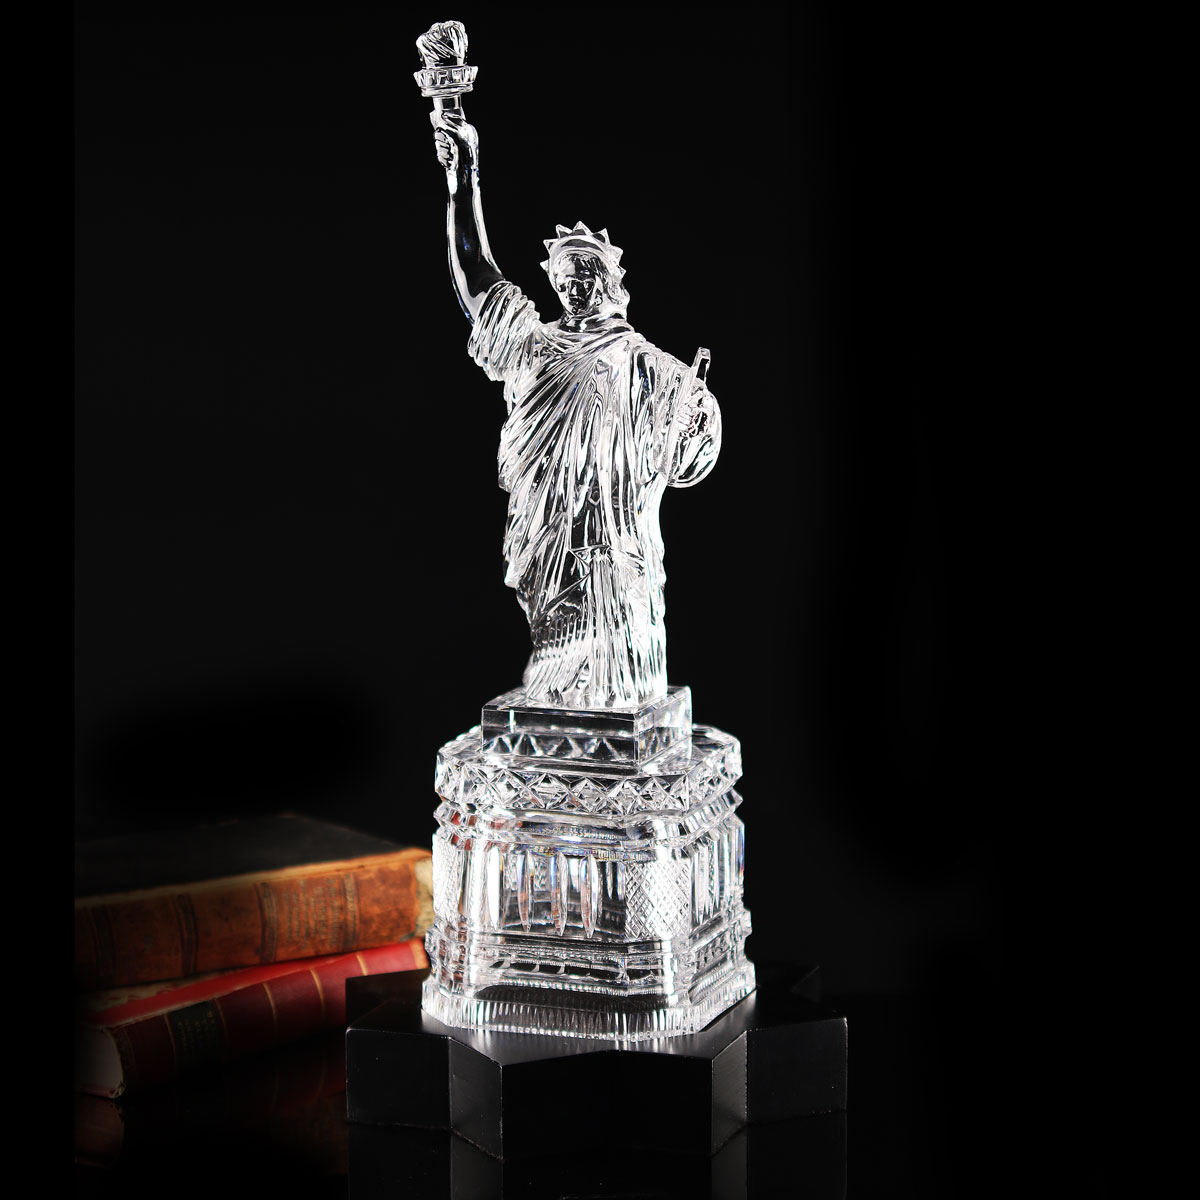 Cashs Ireland Art Collection, Lady Liberty Sculputre, Limited Edition